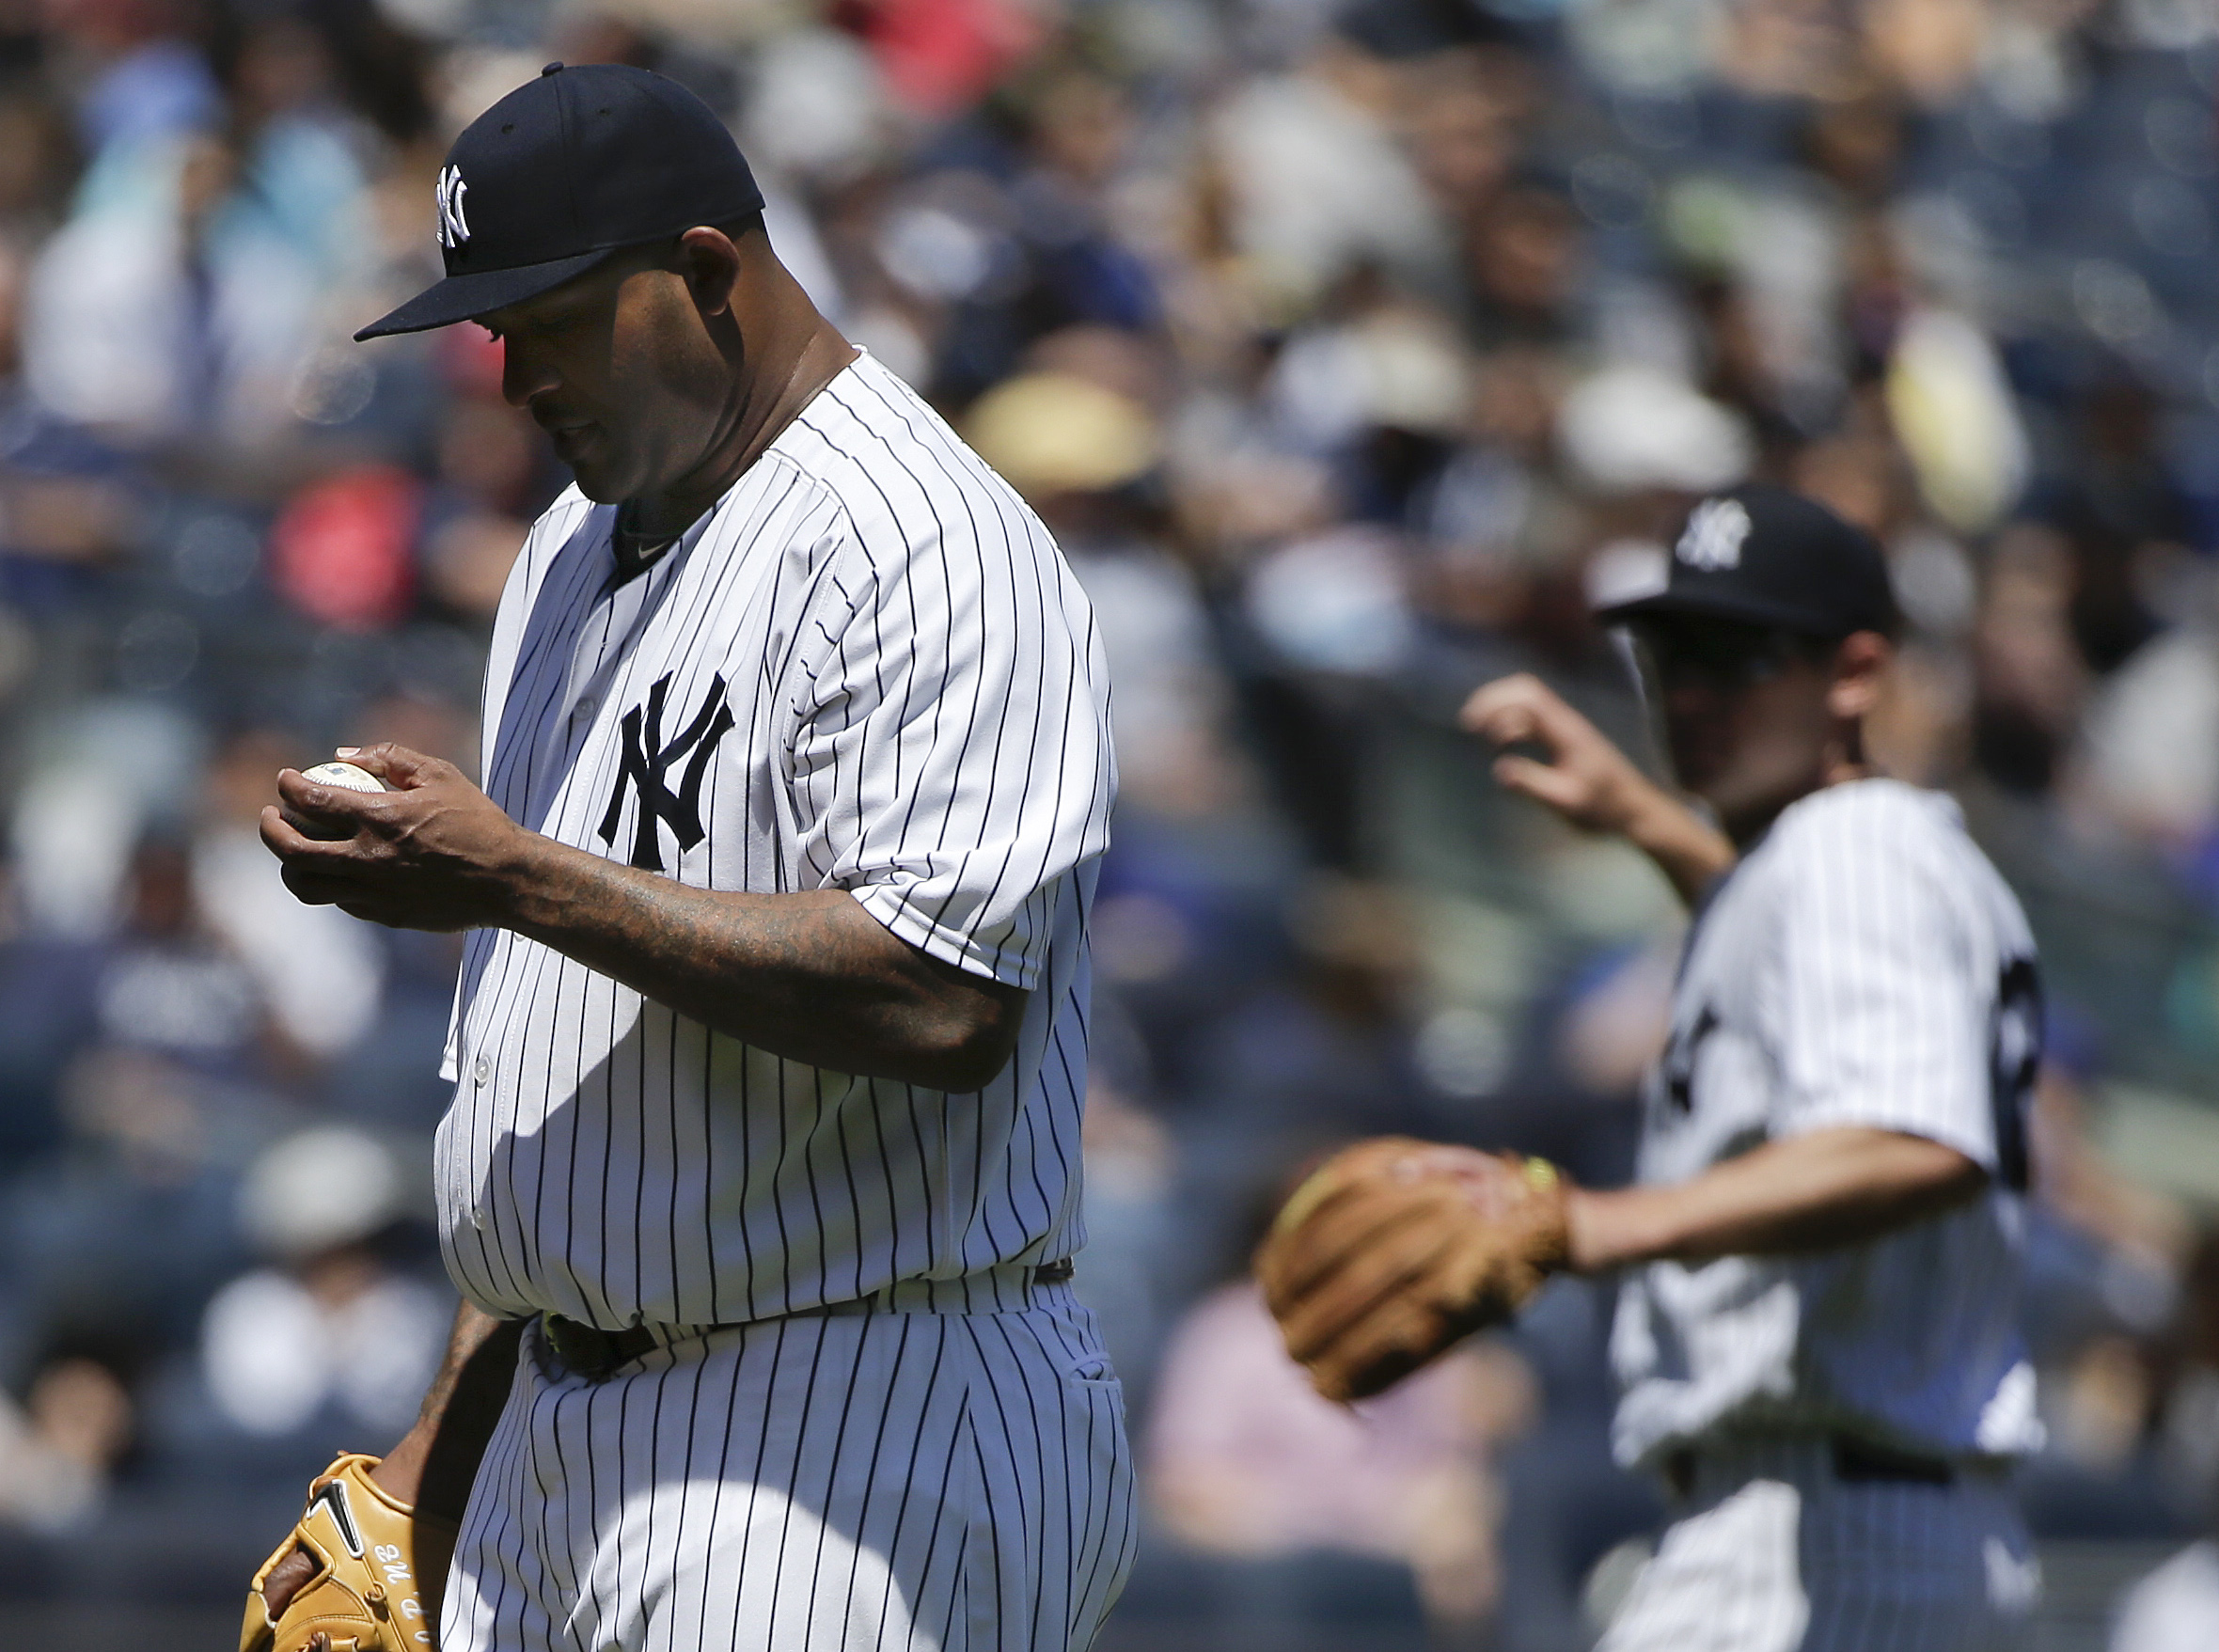 New York Yankees pitcher CC Sabathia checks the ball after giving up a hit to the Texas Rangers during the second inning of a baseball game Saturday, May 23, 2015, in New York. (AP Photo/Julie Jacobson)